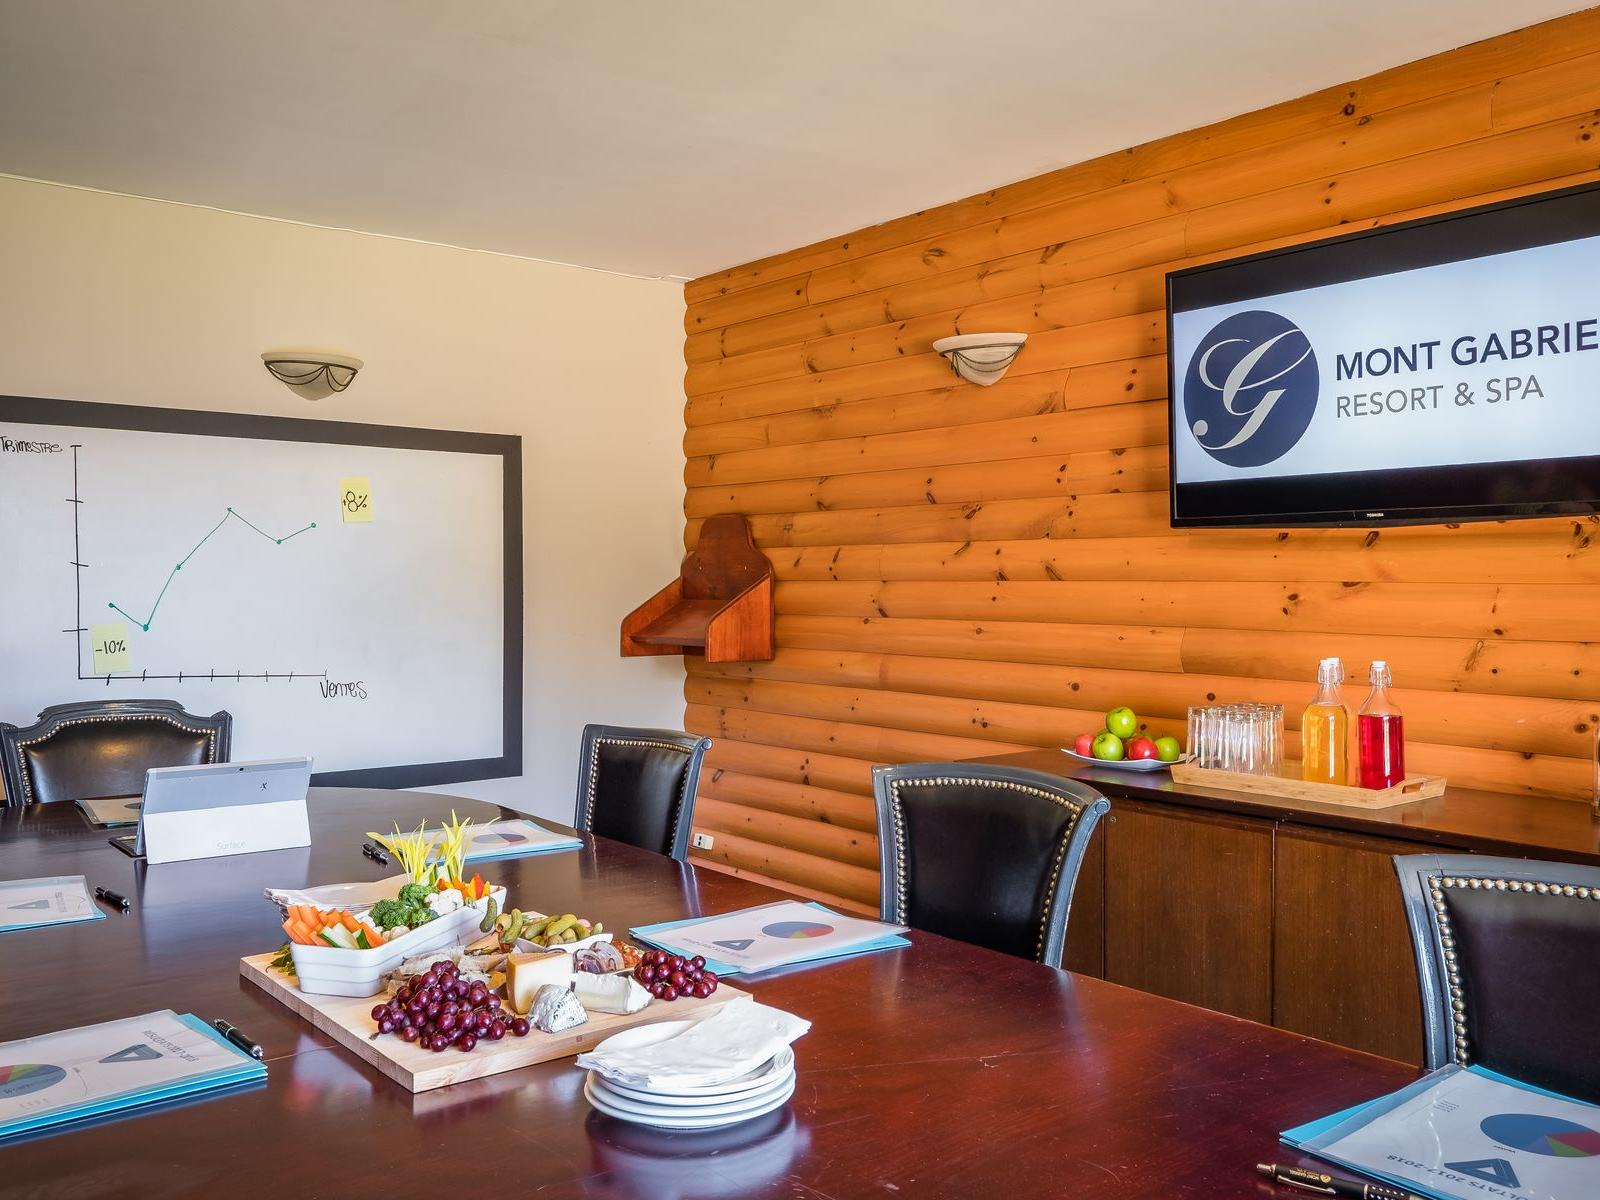 Conference room with wall mounted TV